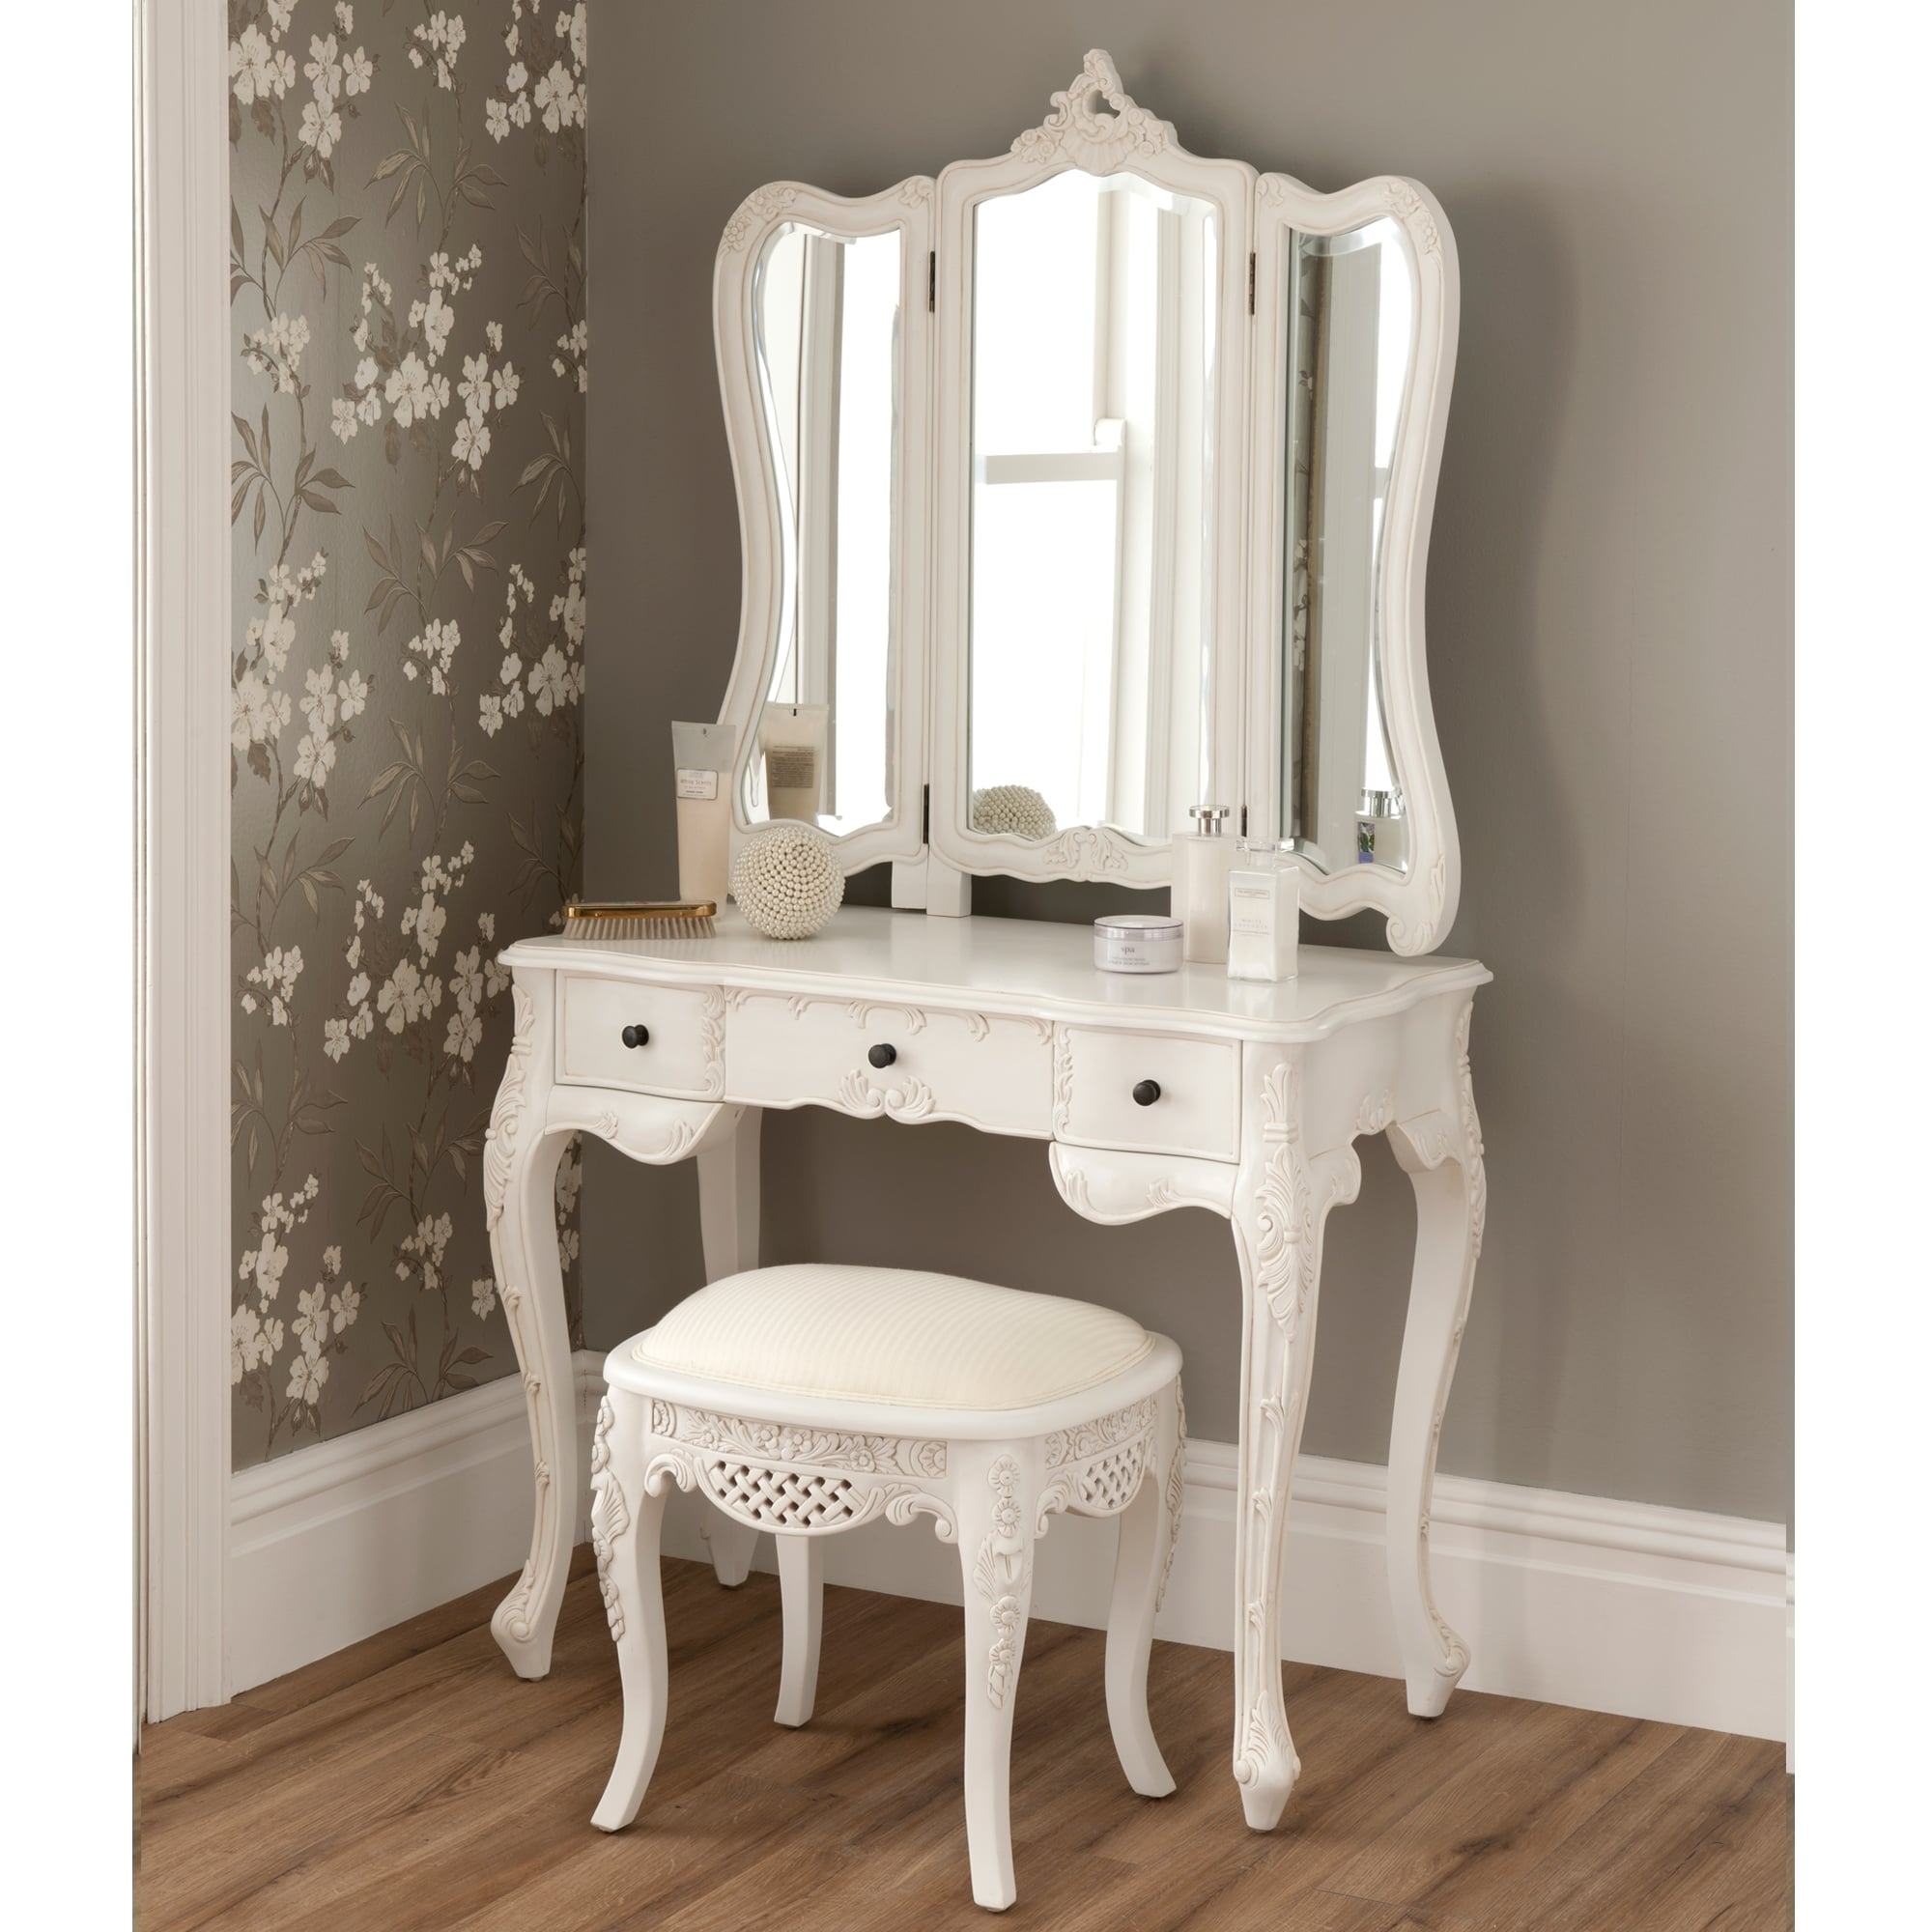 La rochelle antique french dressing table set size small for Vanity dressing table